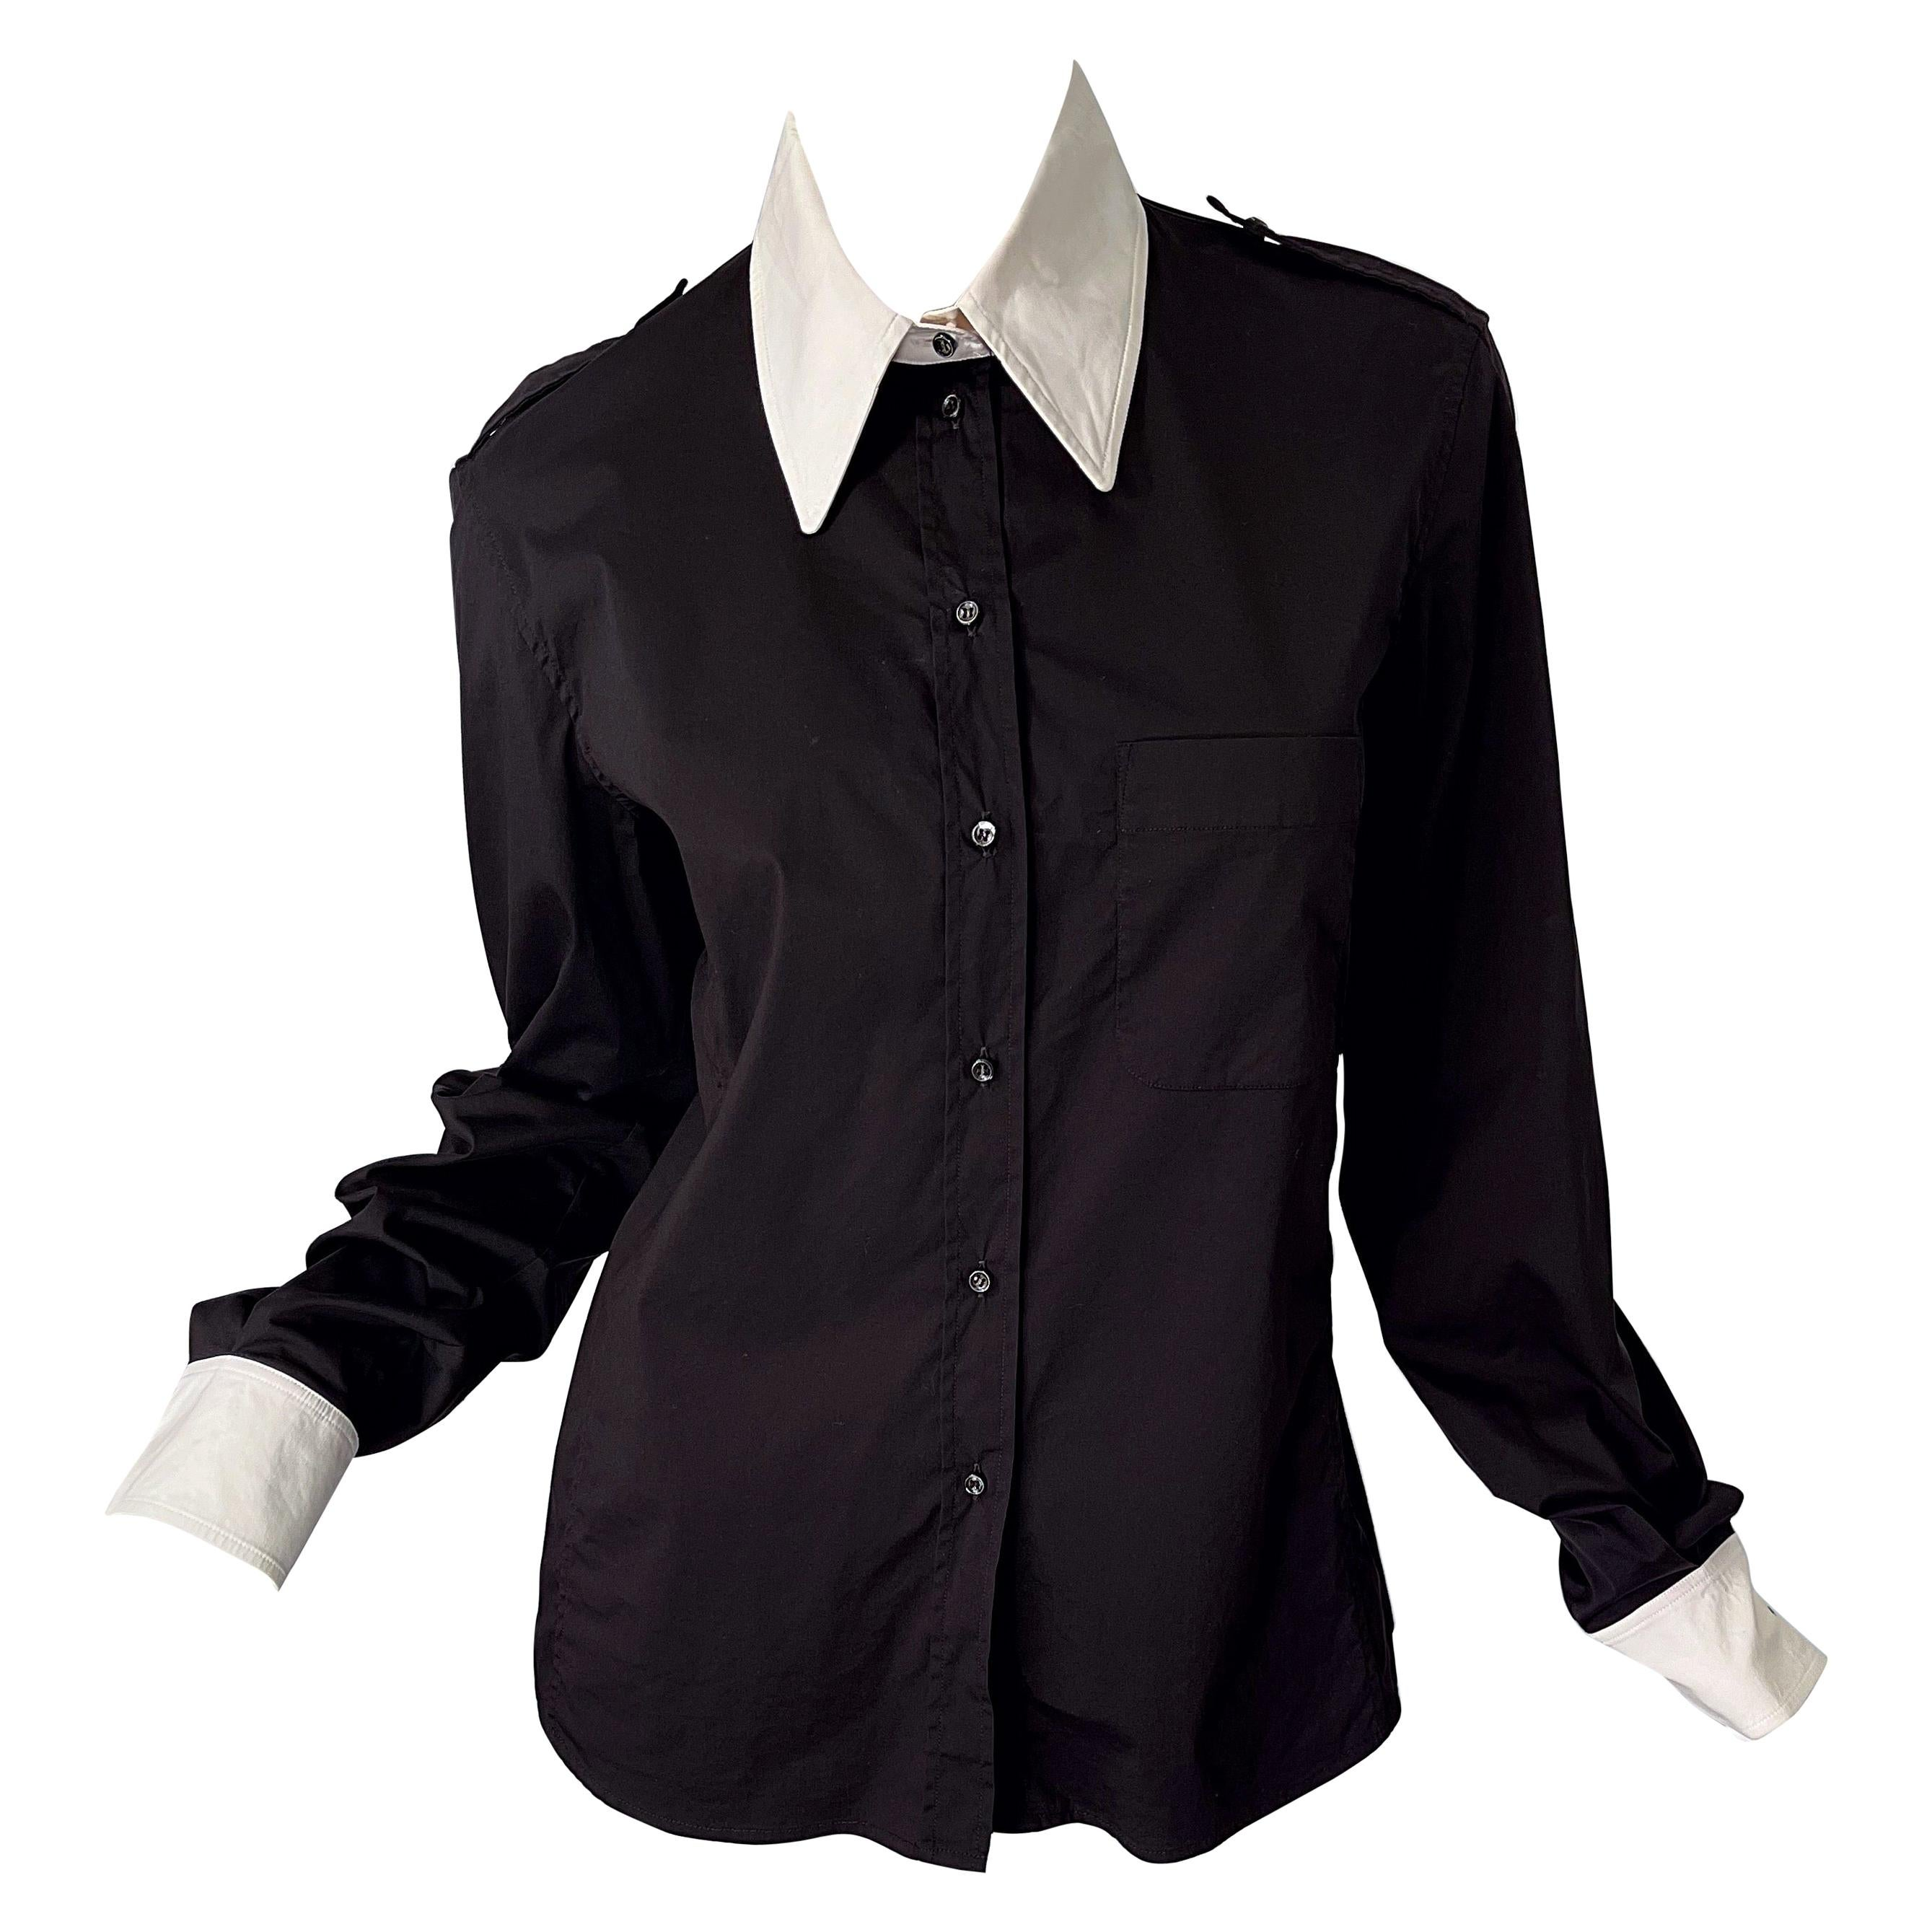 Tom Ford for Yves Saint Laurent Size 44 / 12 Black and White Early 2000s Blouse